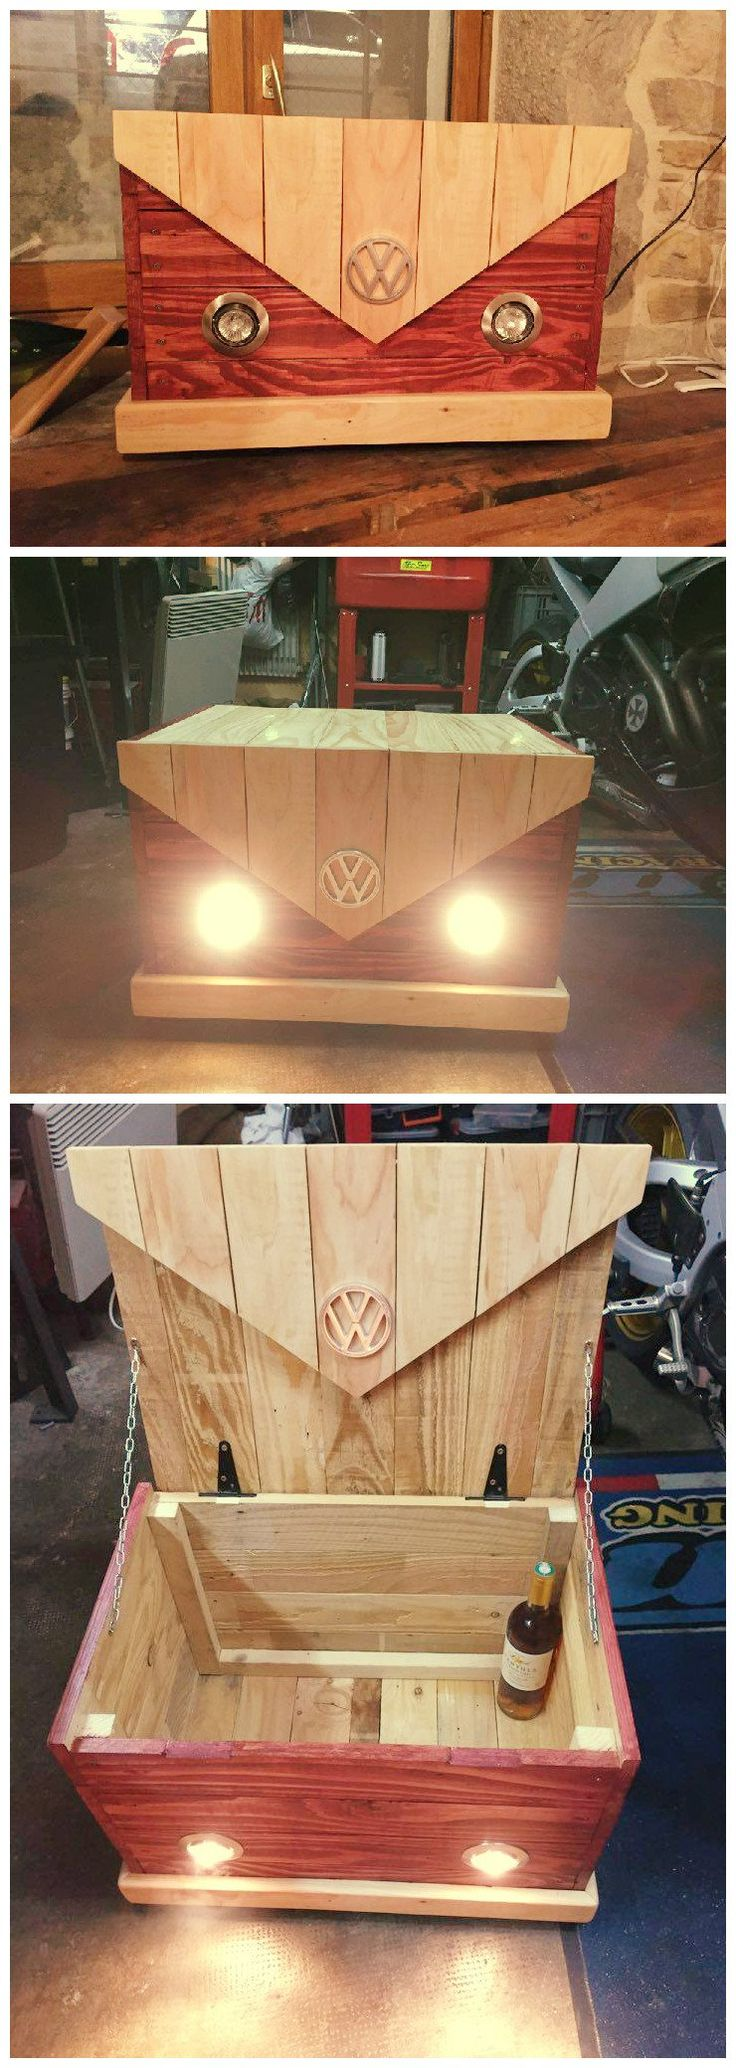 One of our Facebook Fan (Alexia) sent us these beautiful pictures of a storage box she made to look like vintage VolksWagen van. Isn't that fancy? We do no